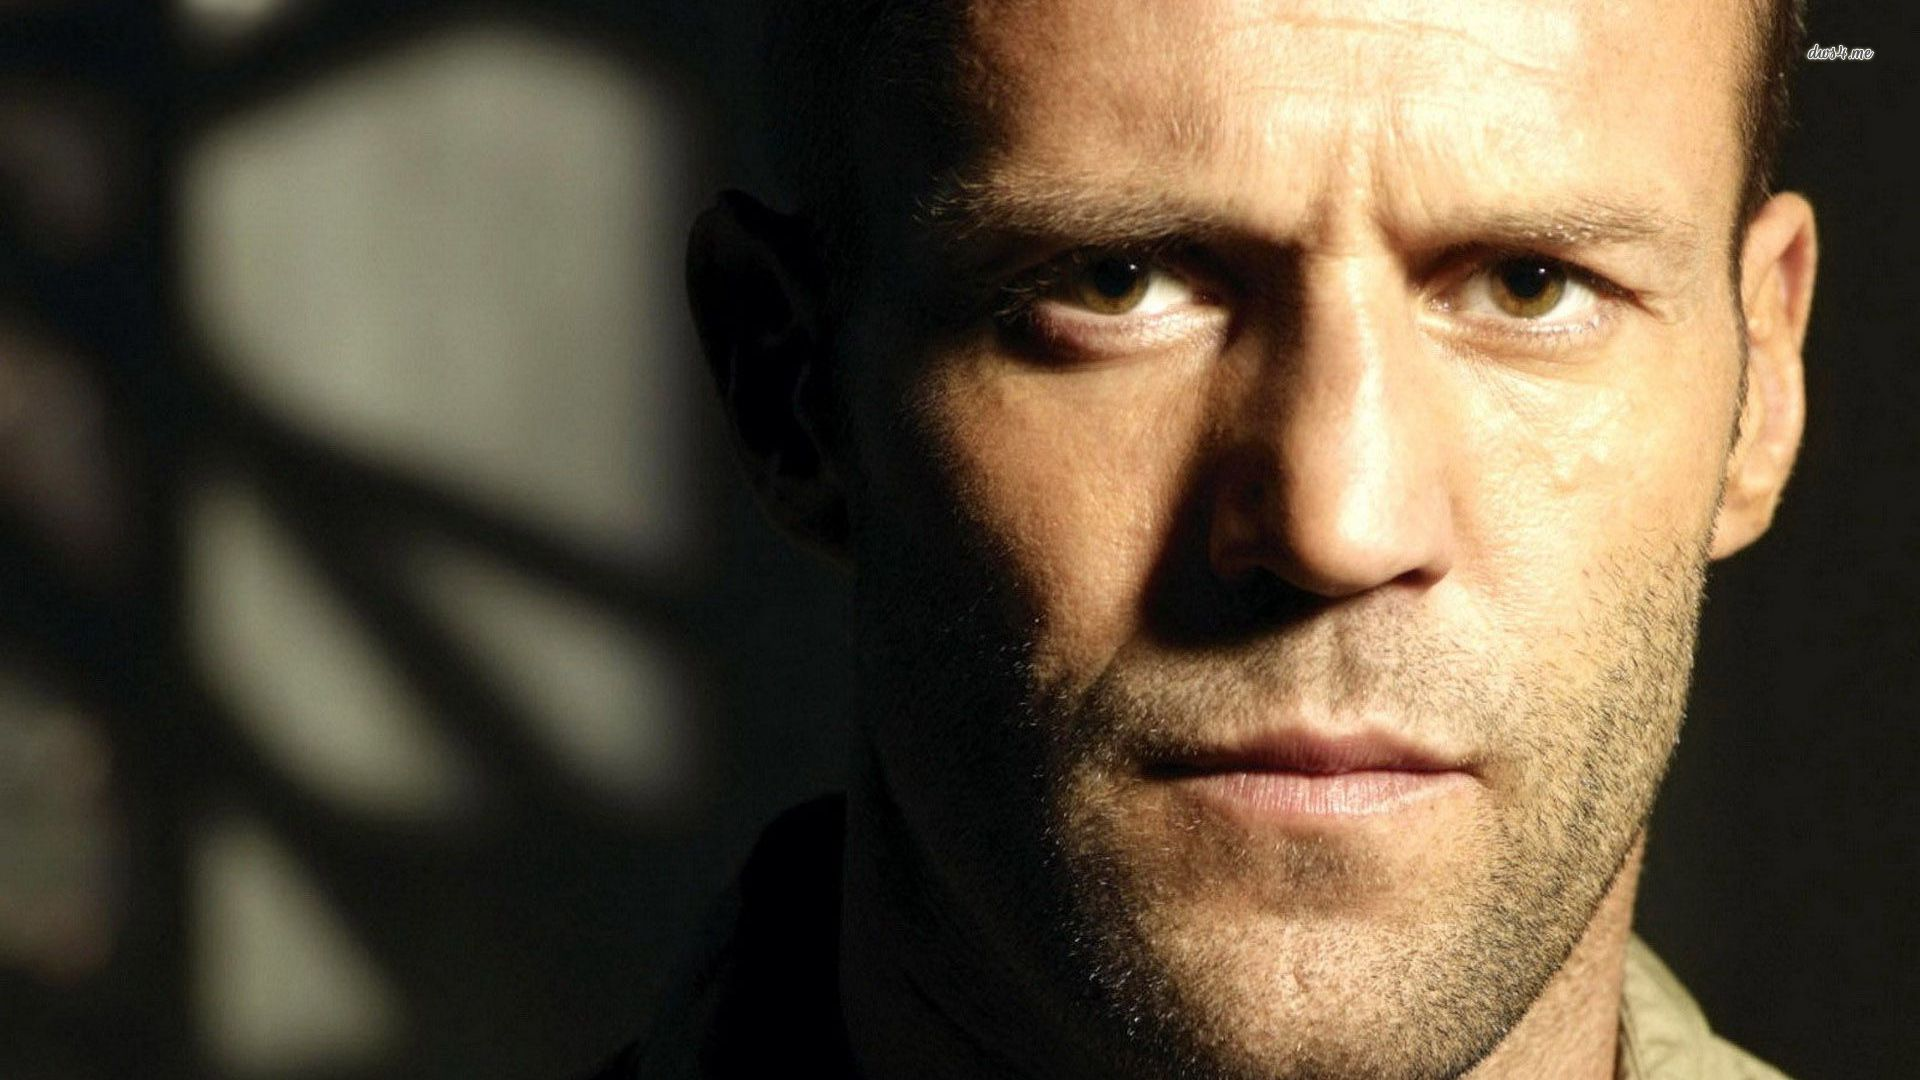 Jason statham wallpapers high resolution and quality download - High resolution wallpaper celebrity ...